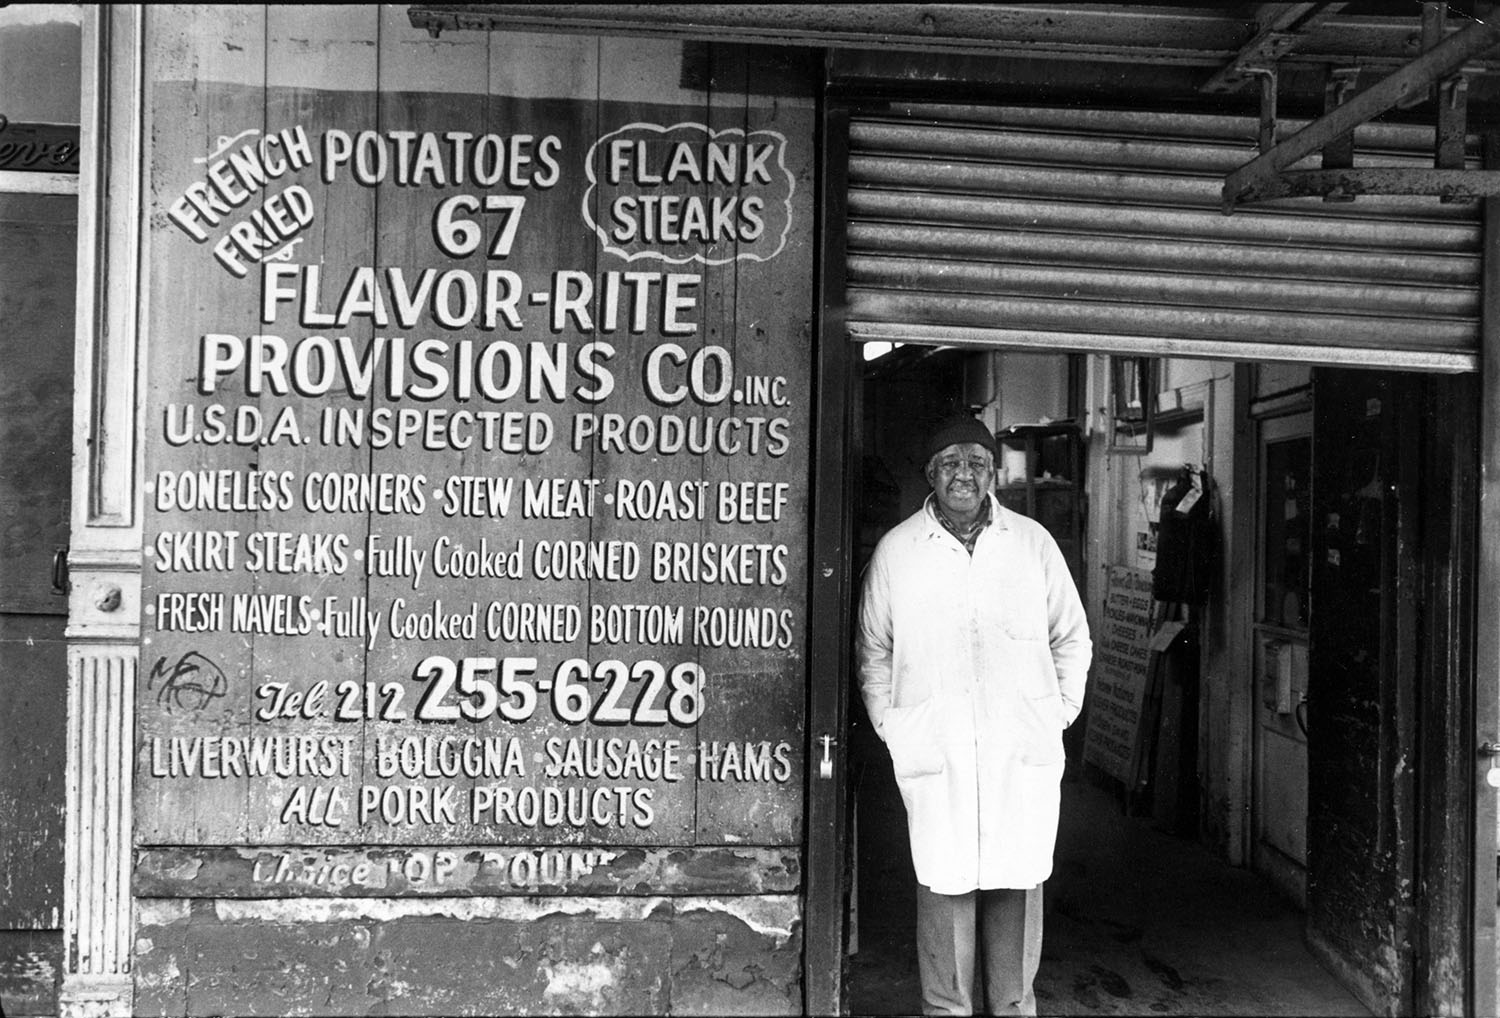 Florent was surrounded by Meat Packers. Flavor-Rite Provisions Co. was directly next  door to Florent at 67  Gansevoort Street .  Photo from the archives of Florent Morellet.